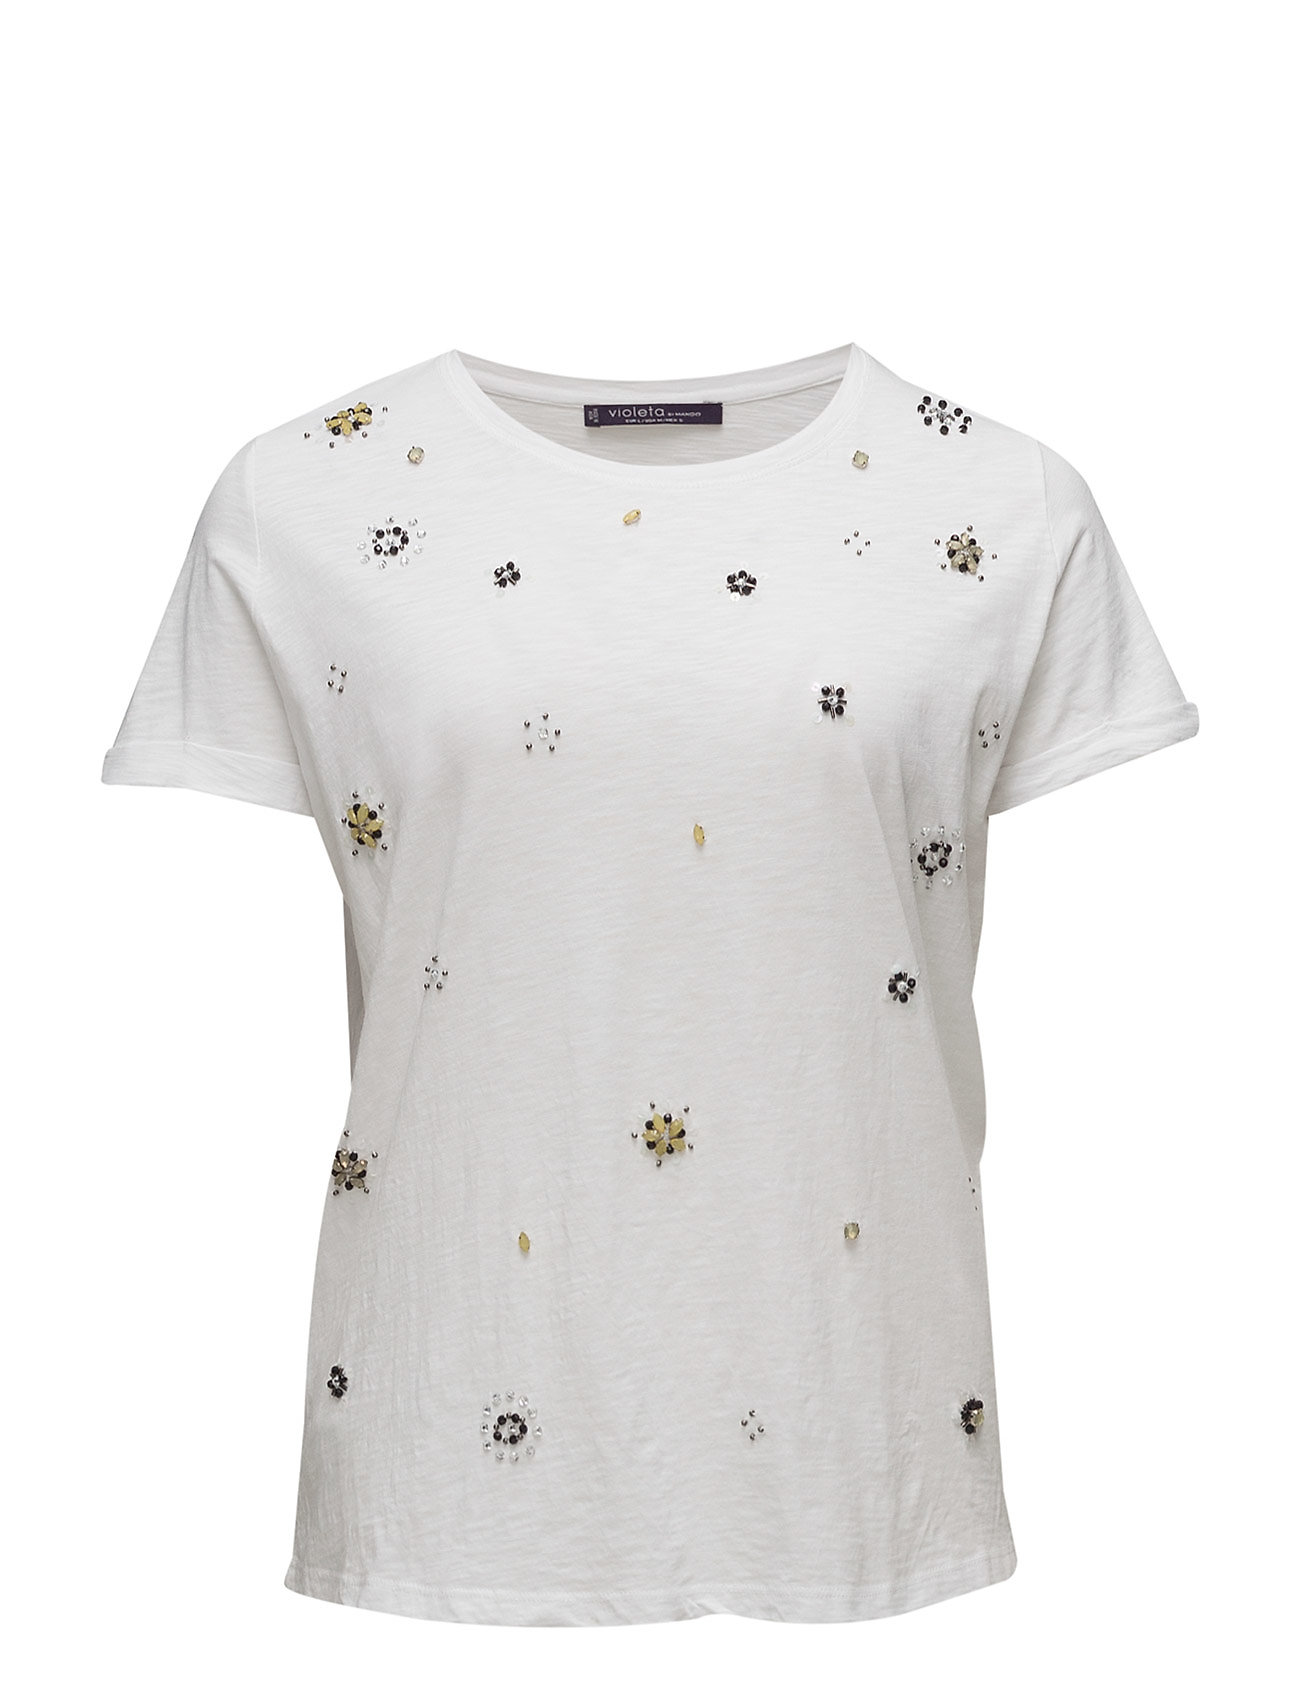 Embroidery Beaded T-Shirt Violeta by Mango Kortærmede til Damer i hvid